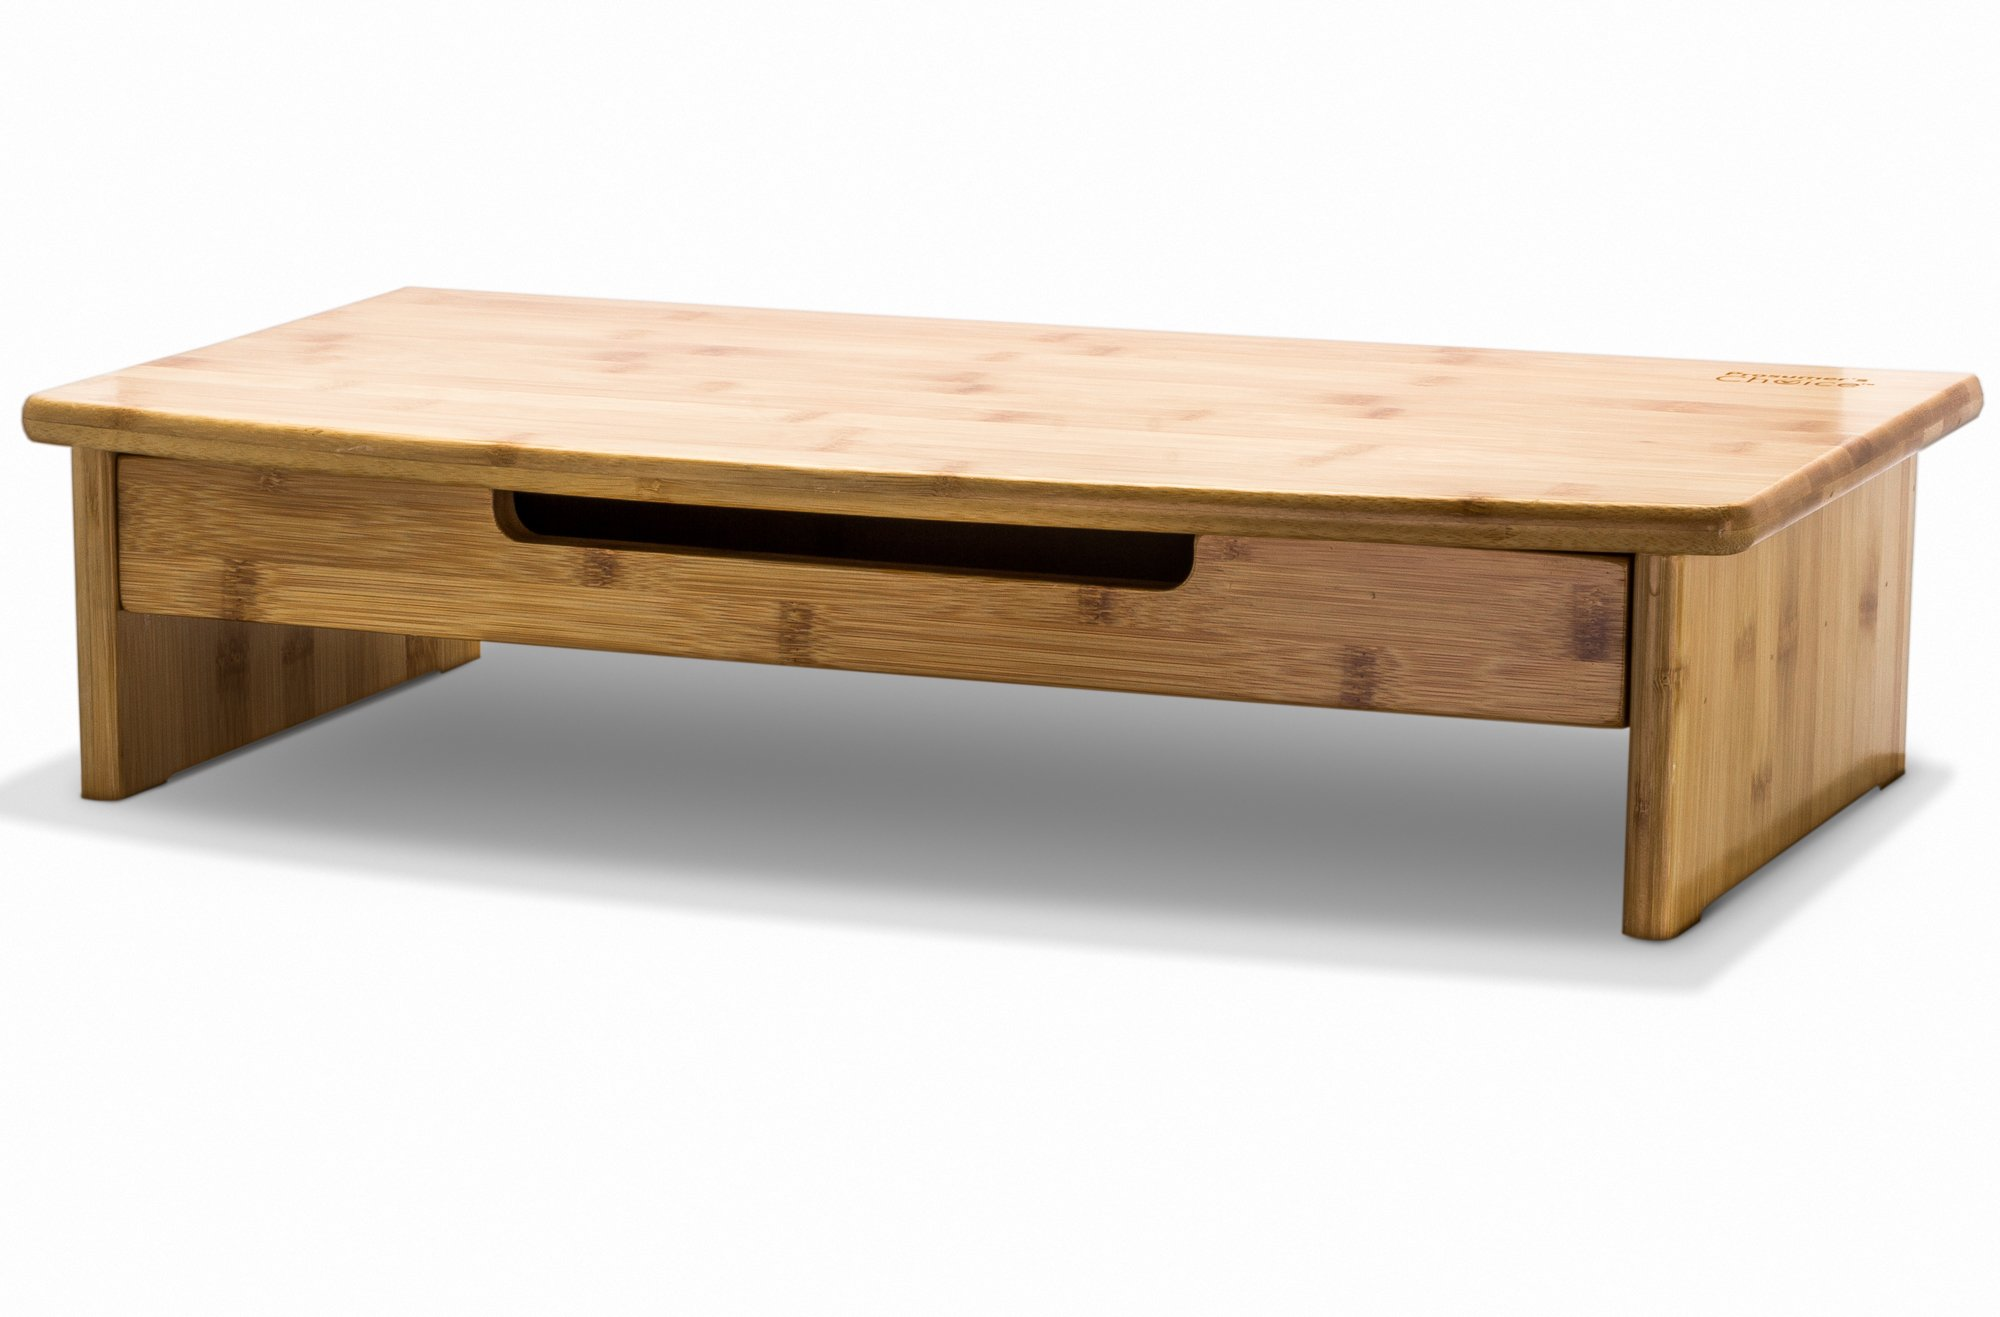 Prosumer's Choice Natural Bamboo Monitor Stand/Riser with Pull-Out Drawer and Hideaway Cubby